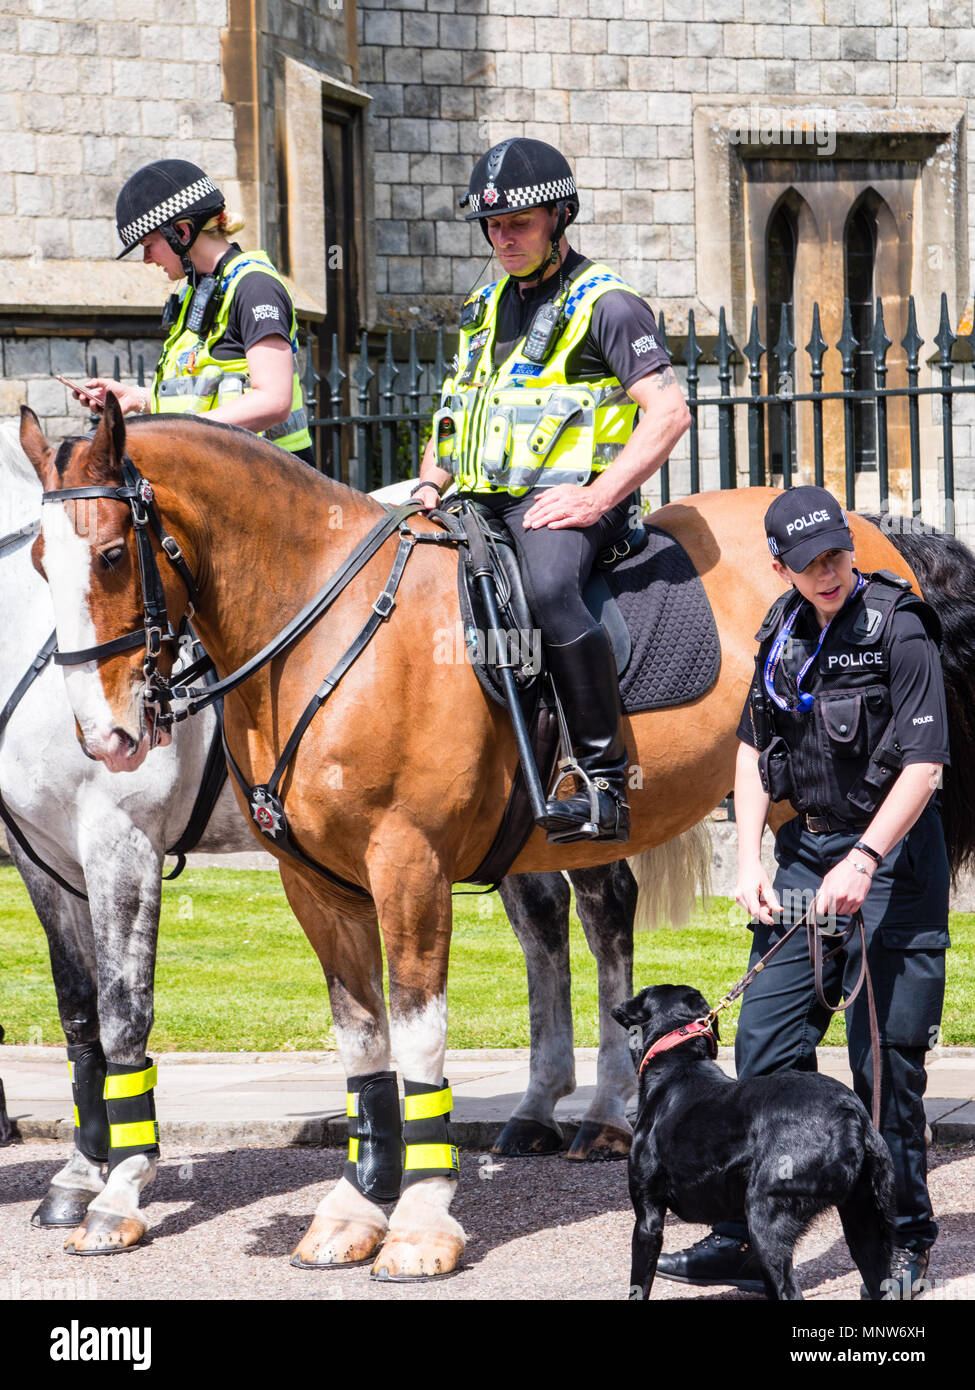 Police Horse riders and Dog Handler, Outside Windsor Castle, The Long Walk, Windsor, Berkshire, England, UK, GB. - Stock Image